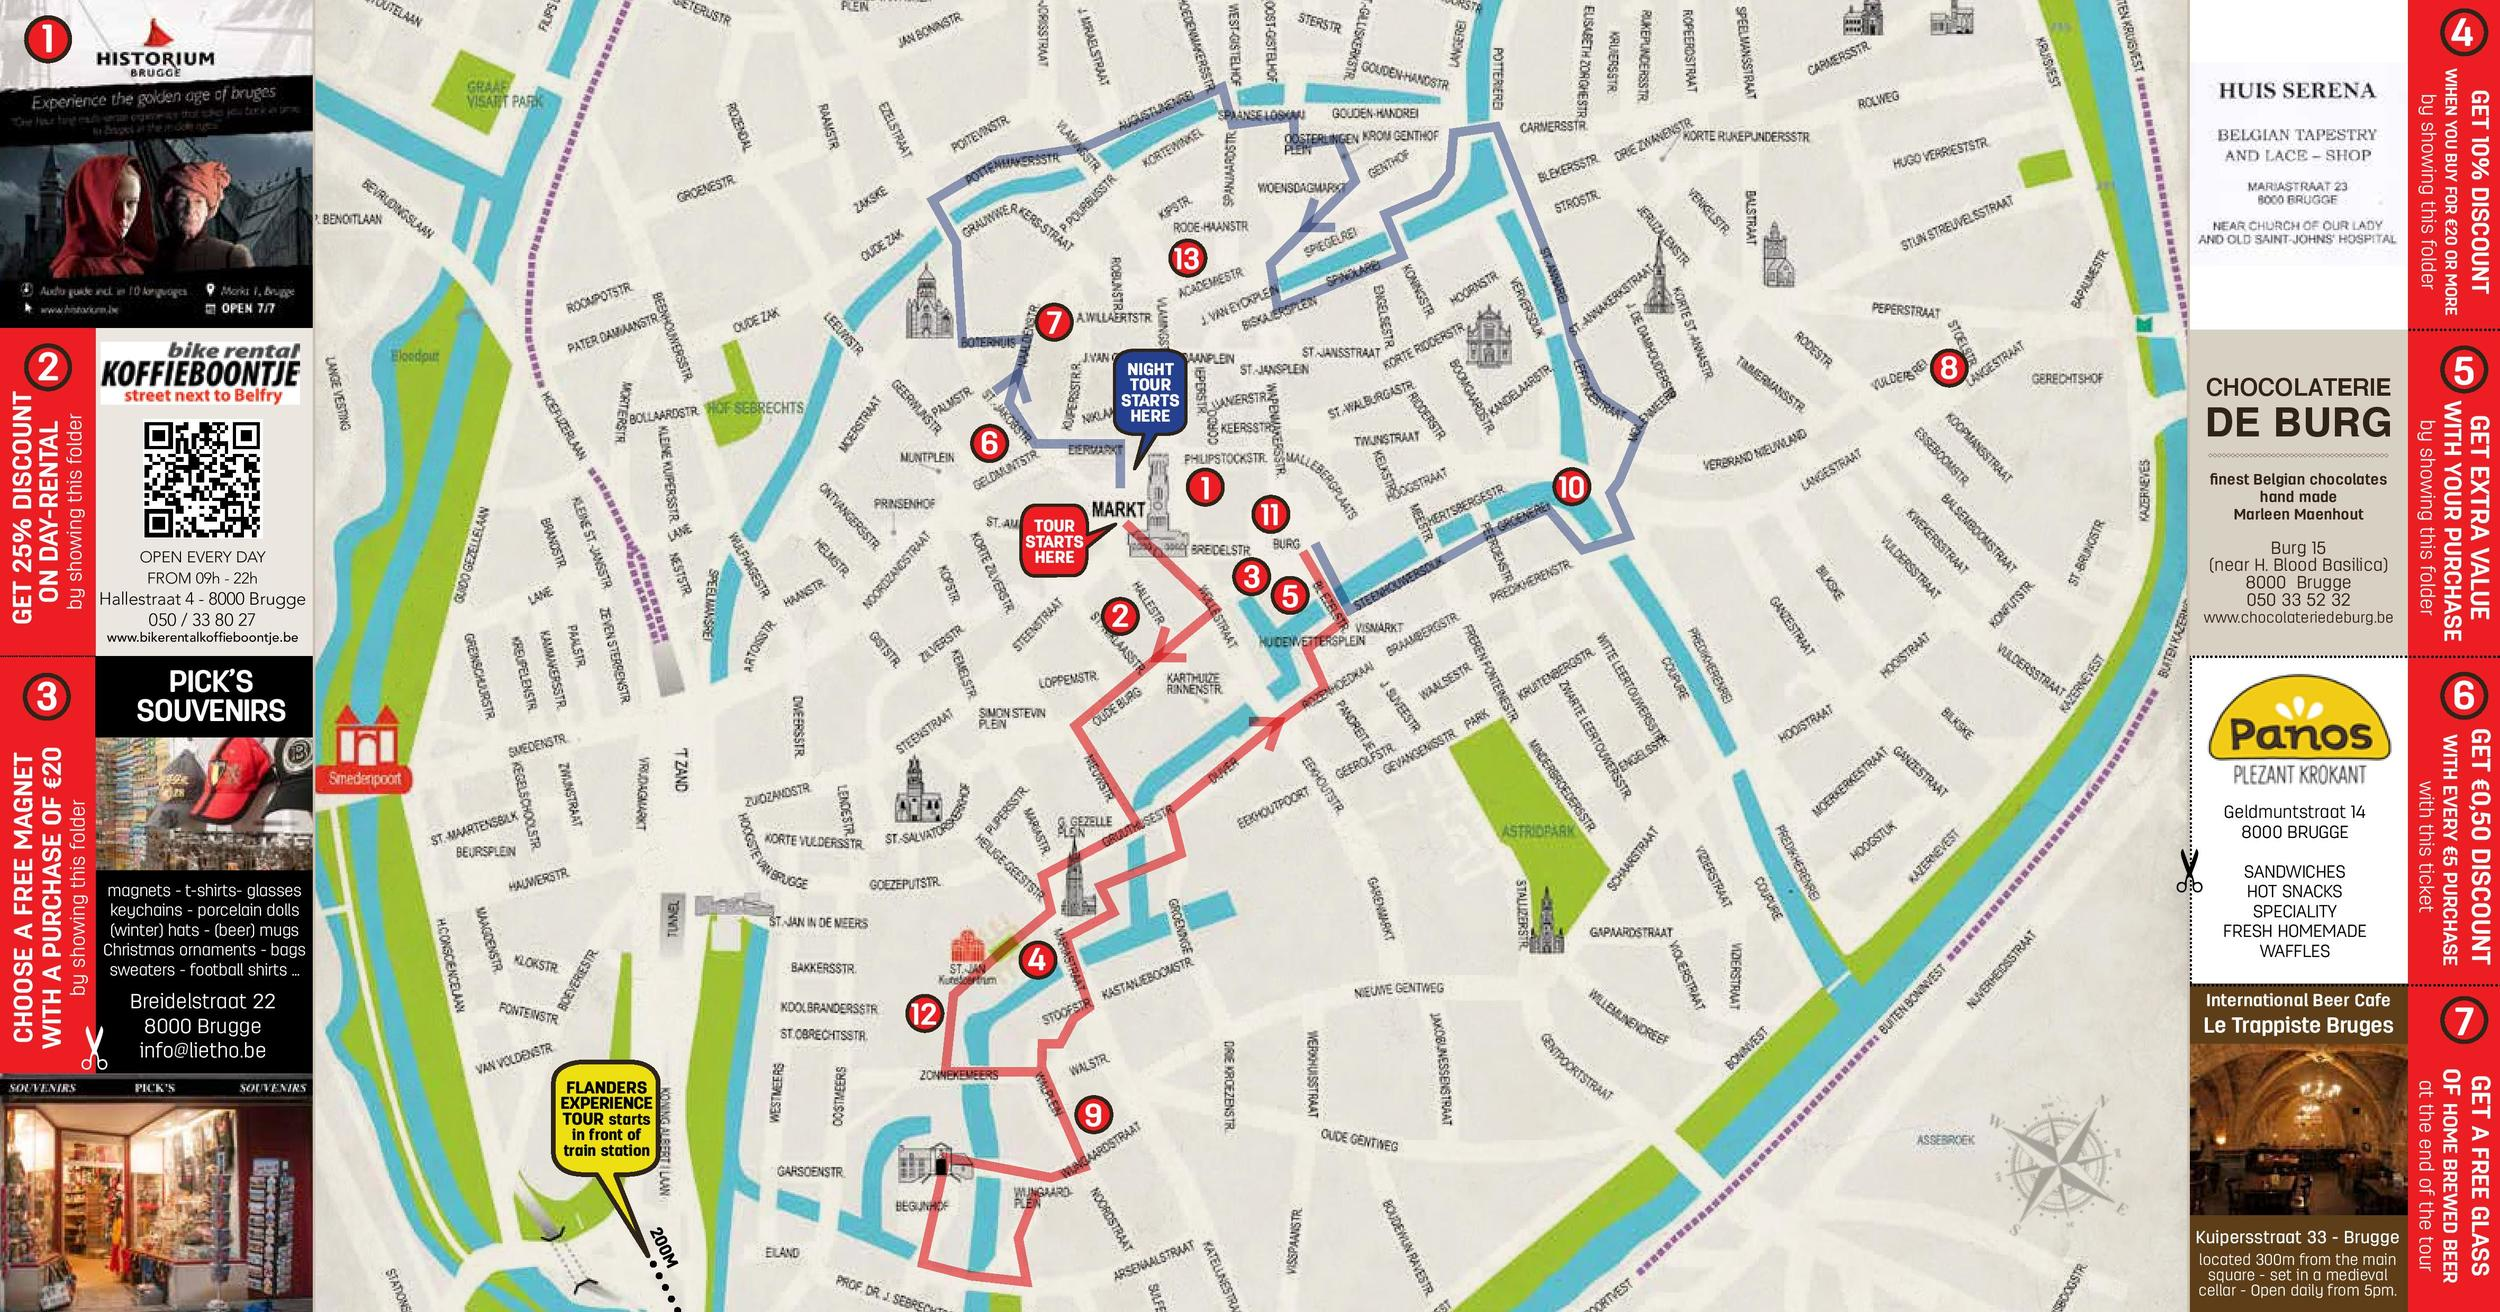 Map of the two tour routes. Red is the day rtoute and blue is the night route. Map courtesy of Legends of Bruges.